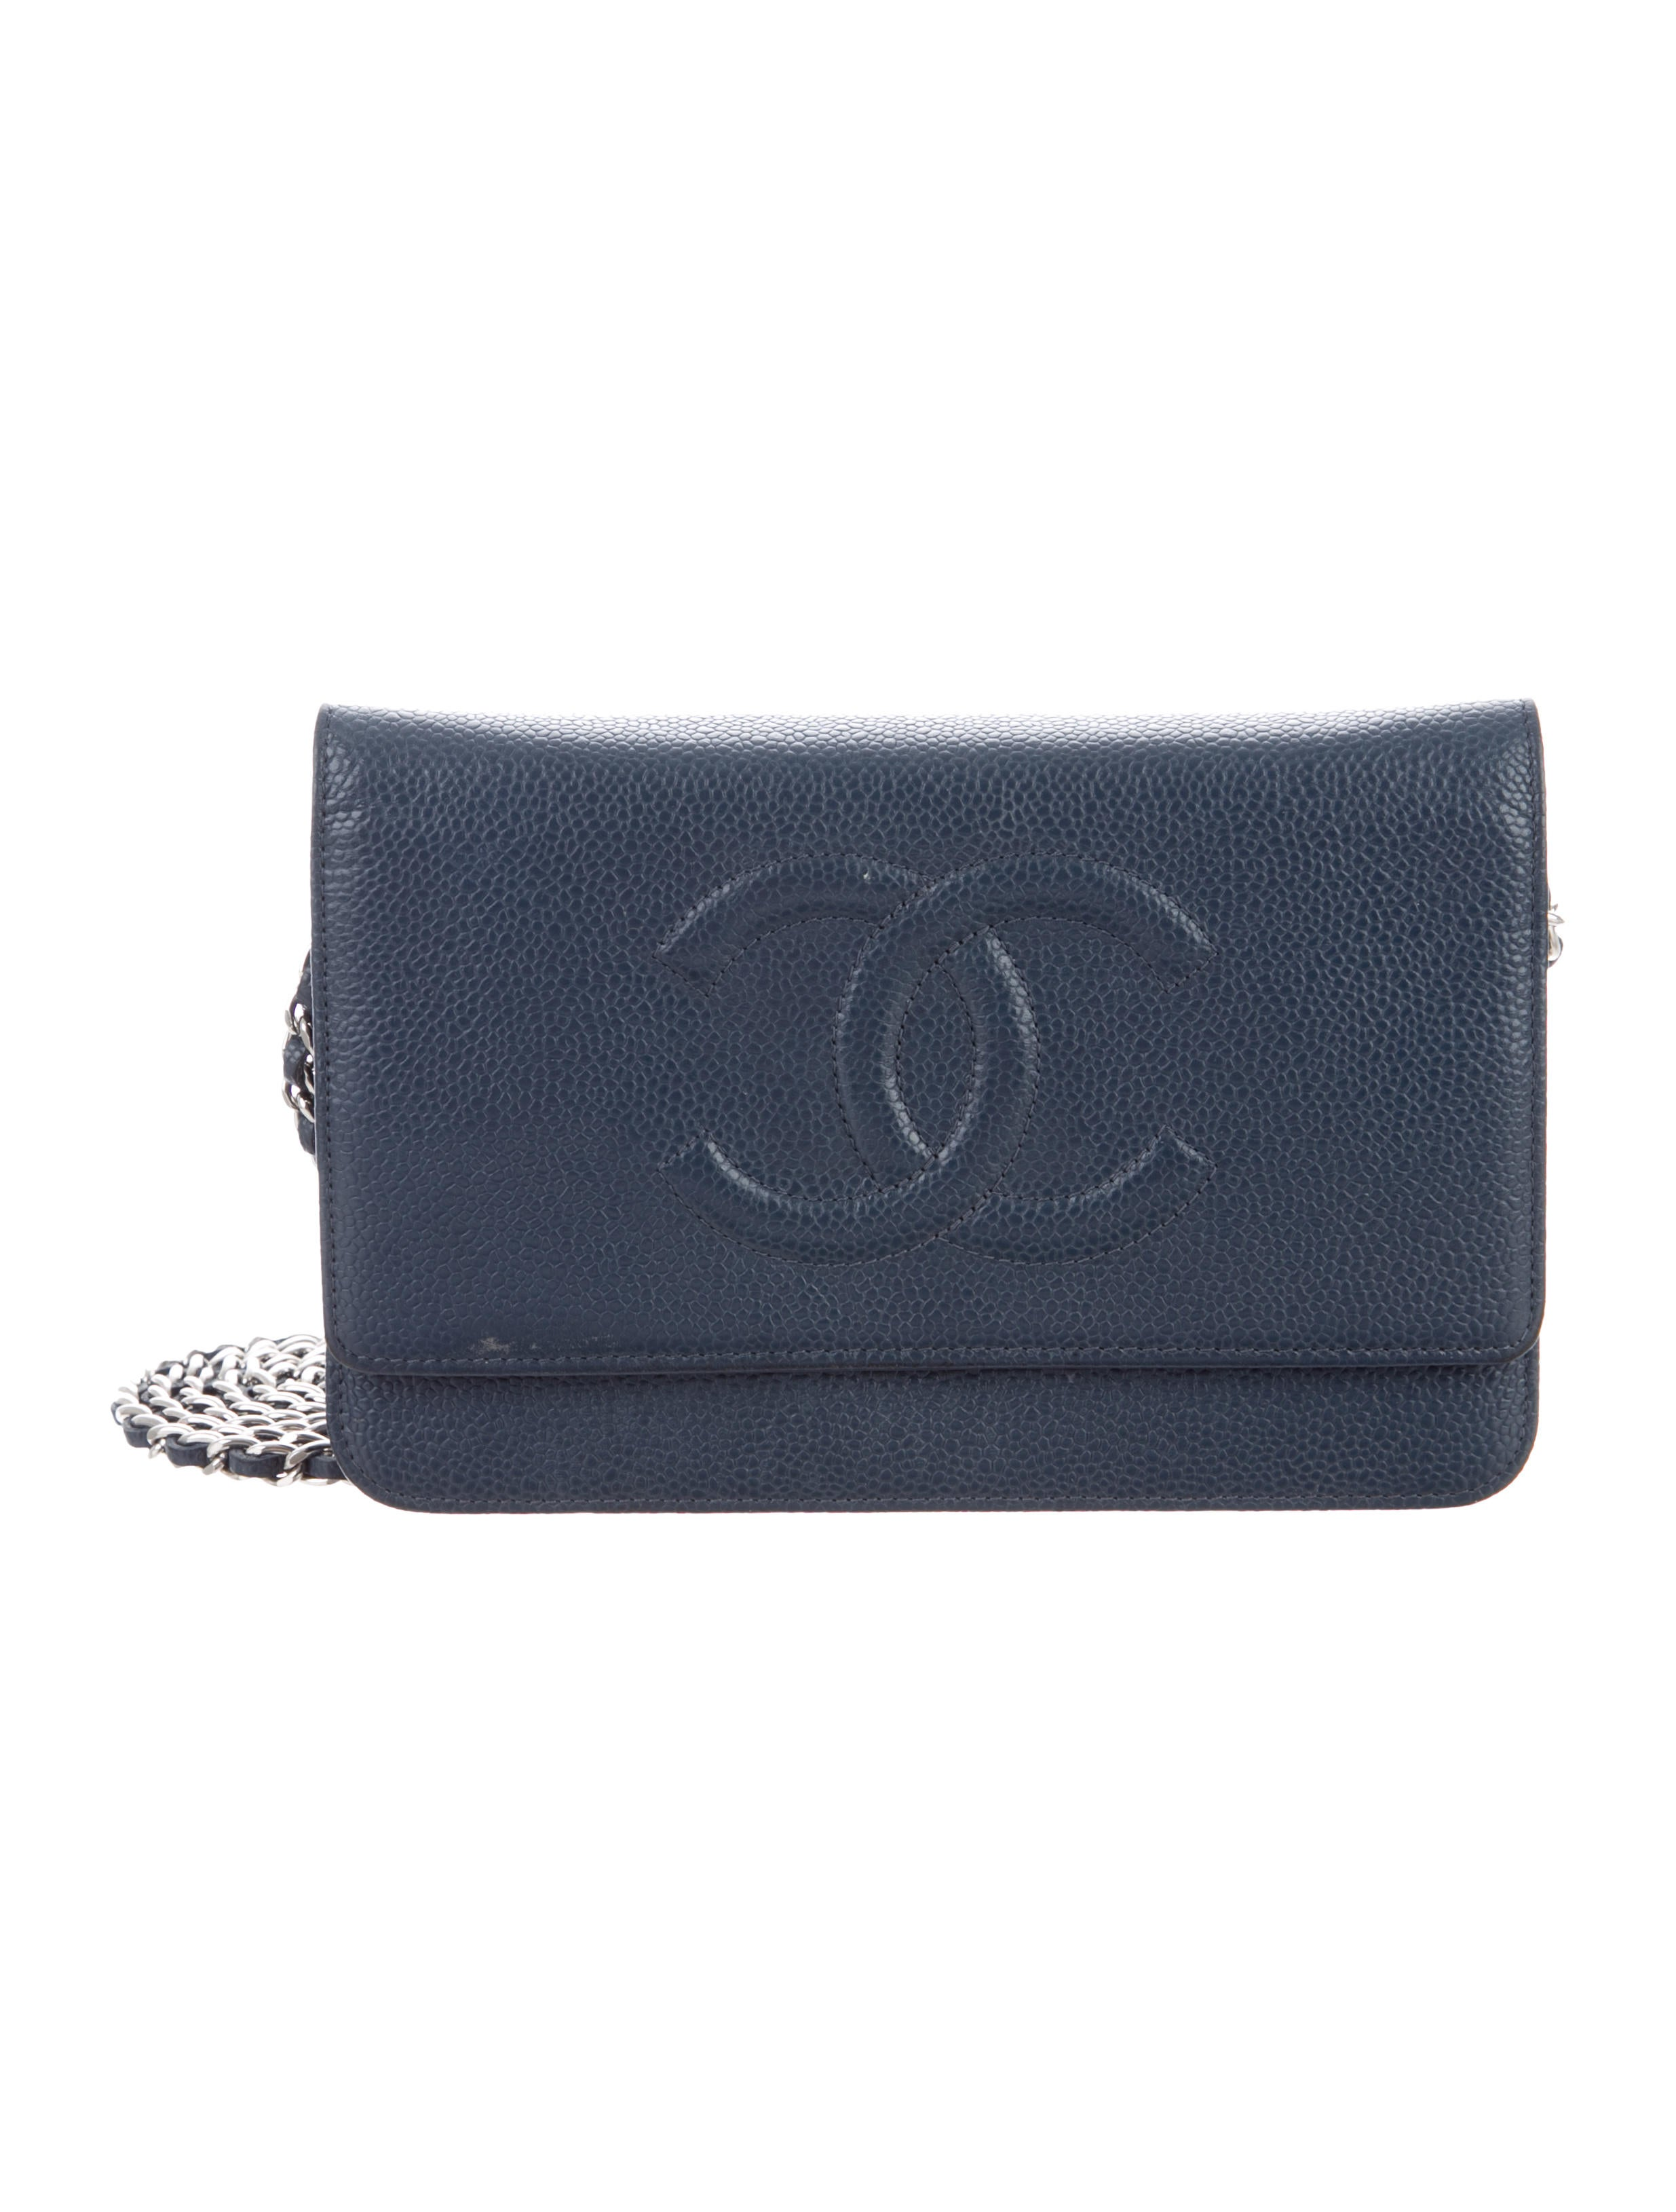 ab5c067b27fe Chanel Timeless Wallet on Chain - Handbags - CHA298890 | The RealReal